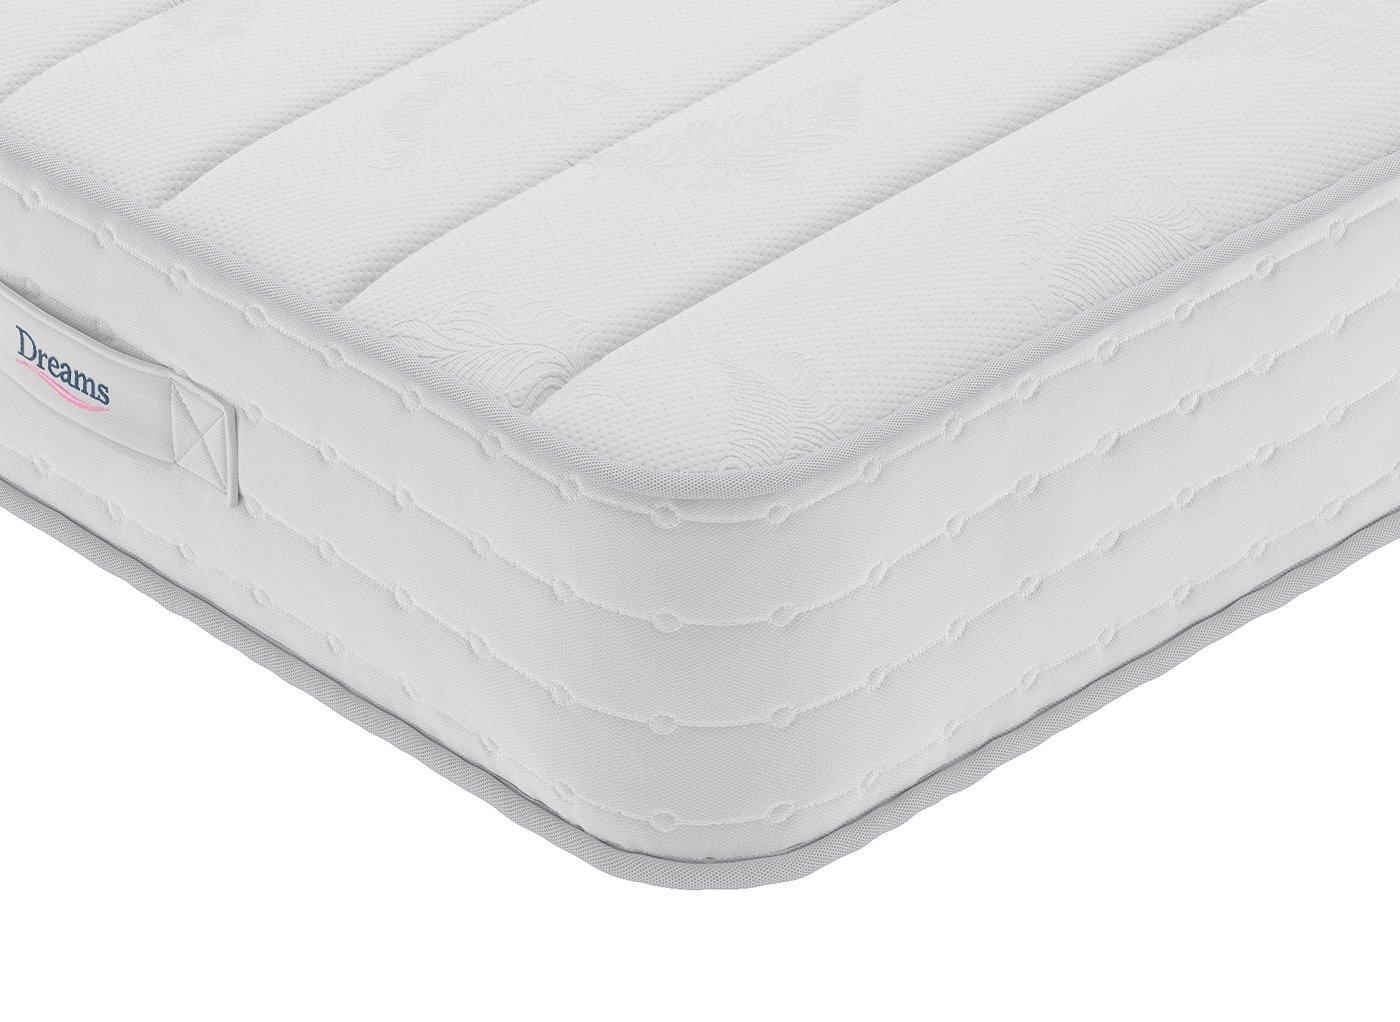 Campbell Pocket Sprung Mattress - Medium